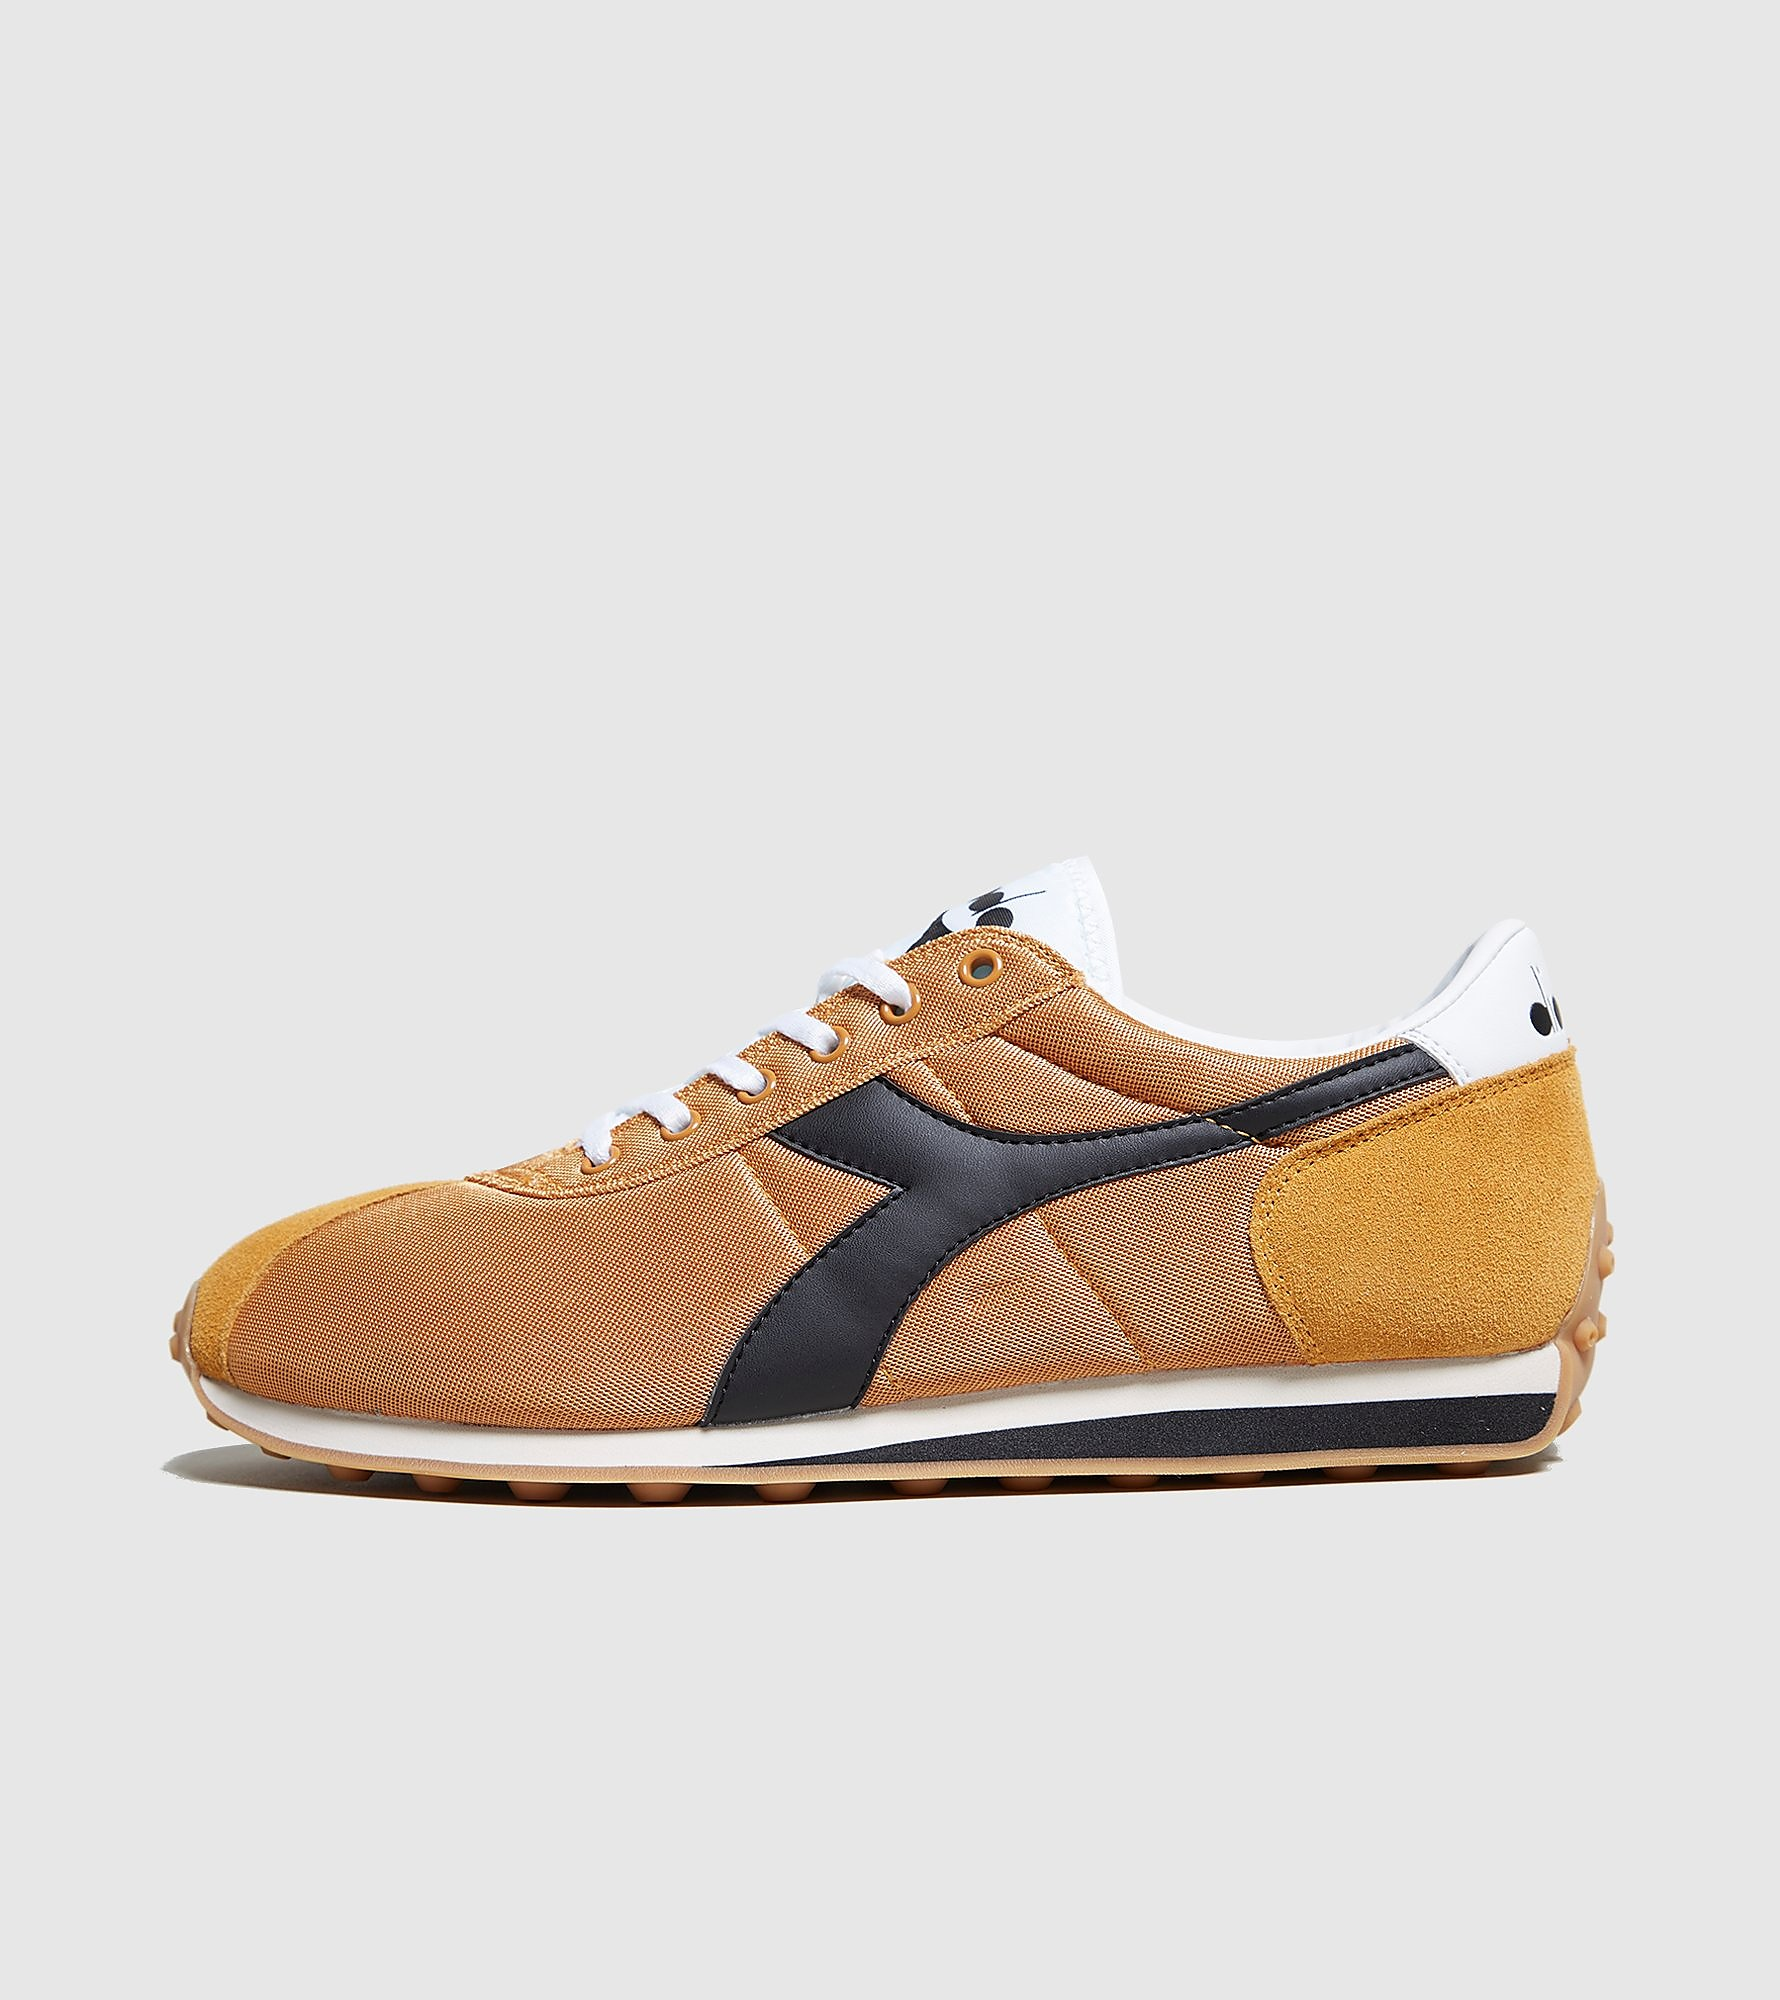 Diadora - Diadora B. Elite Suede Antracite - 501.170952 75070 - EU 40.5 - UK 7 - US 7.5 - JP 25.5 XyXHP0DM